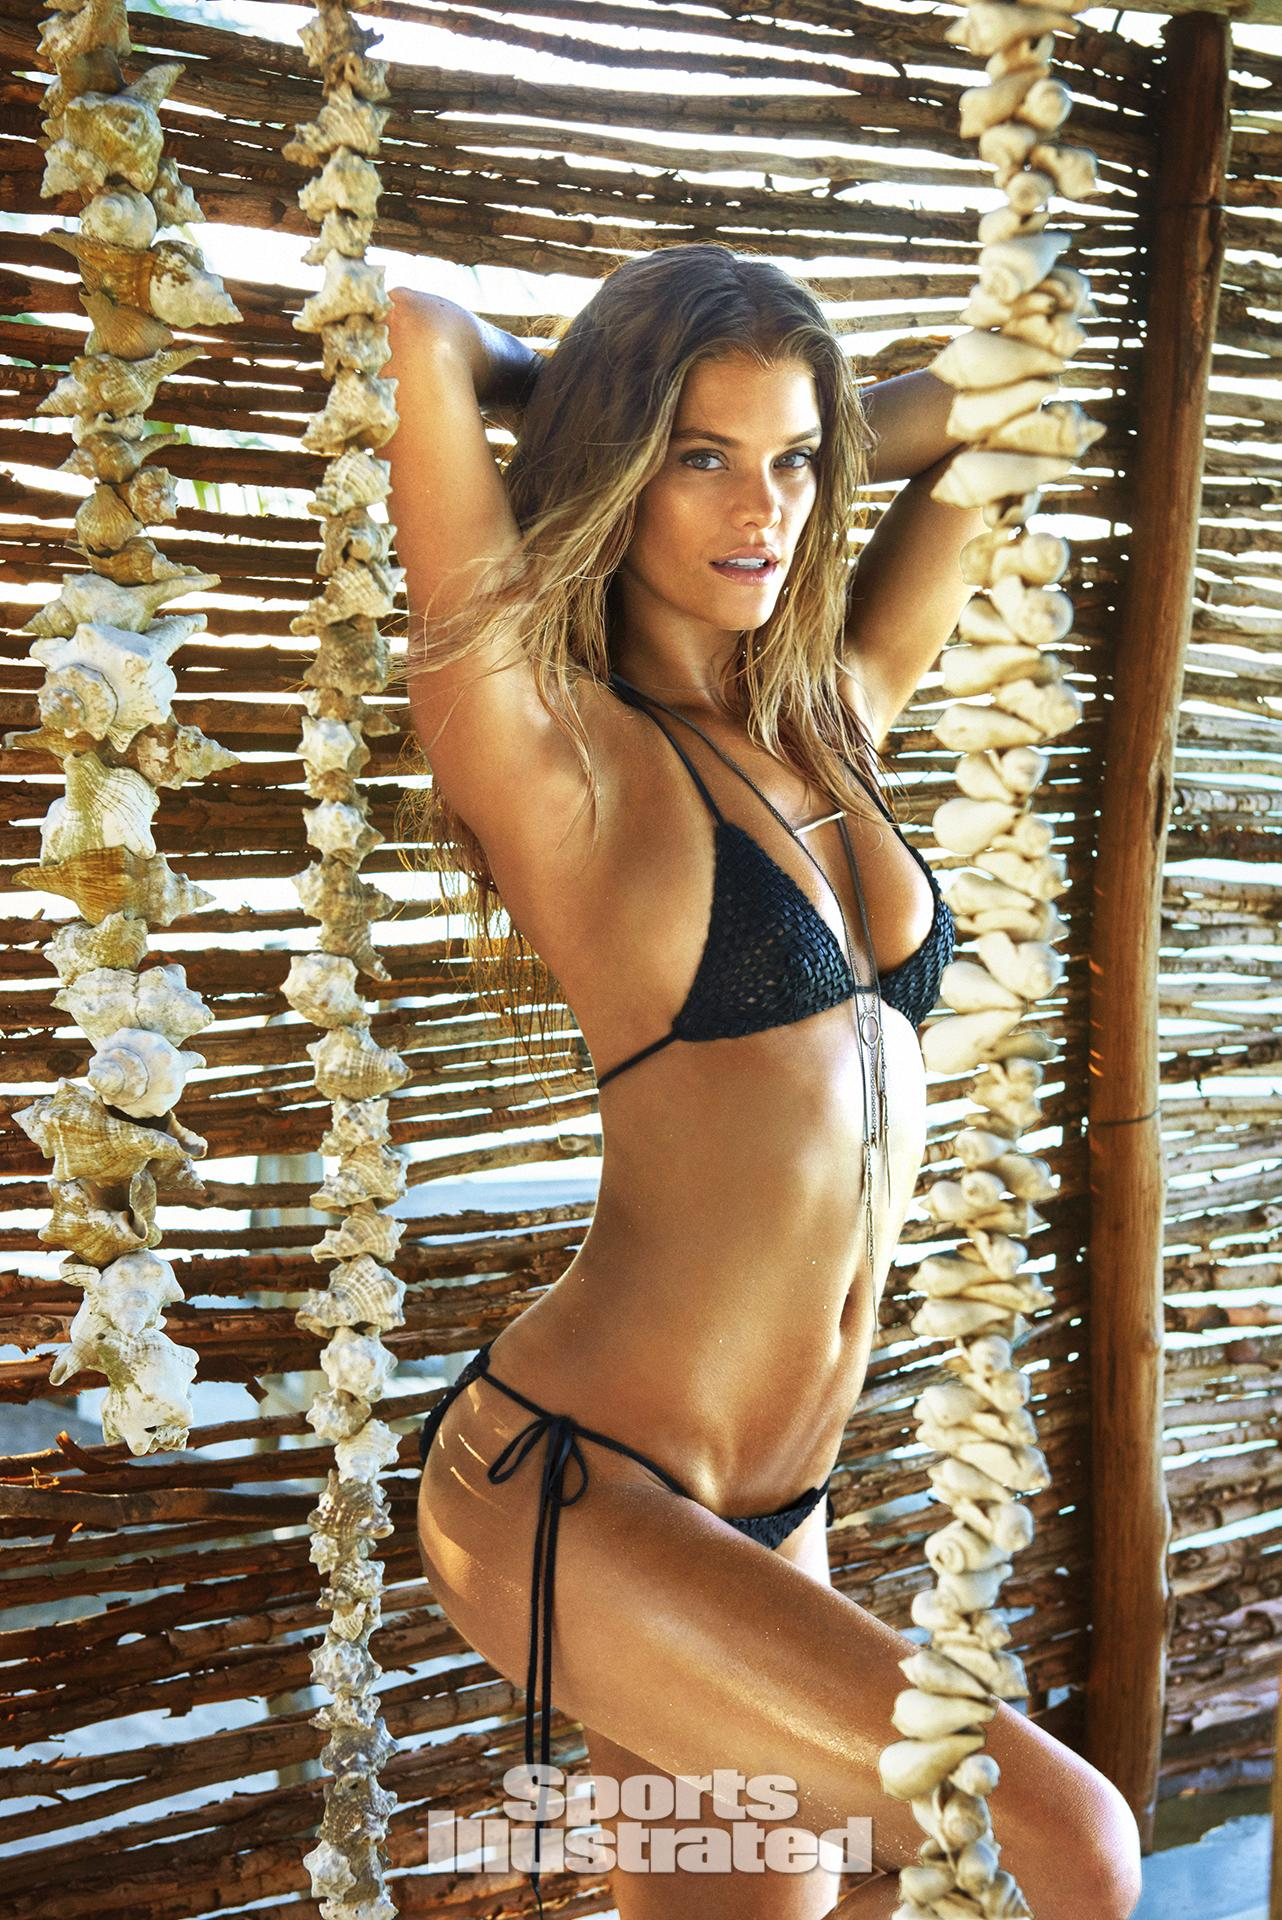 Nina Agdal was photographed by Ruven Afanador in Zanzibar. Swimsuit by Lost Art By Jordan Betten.